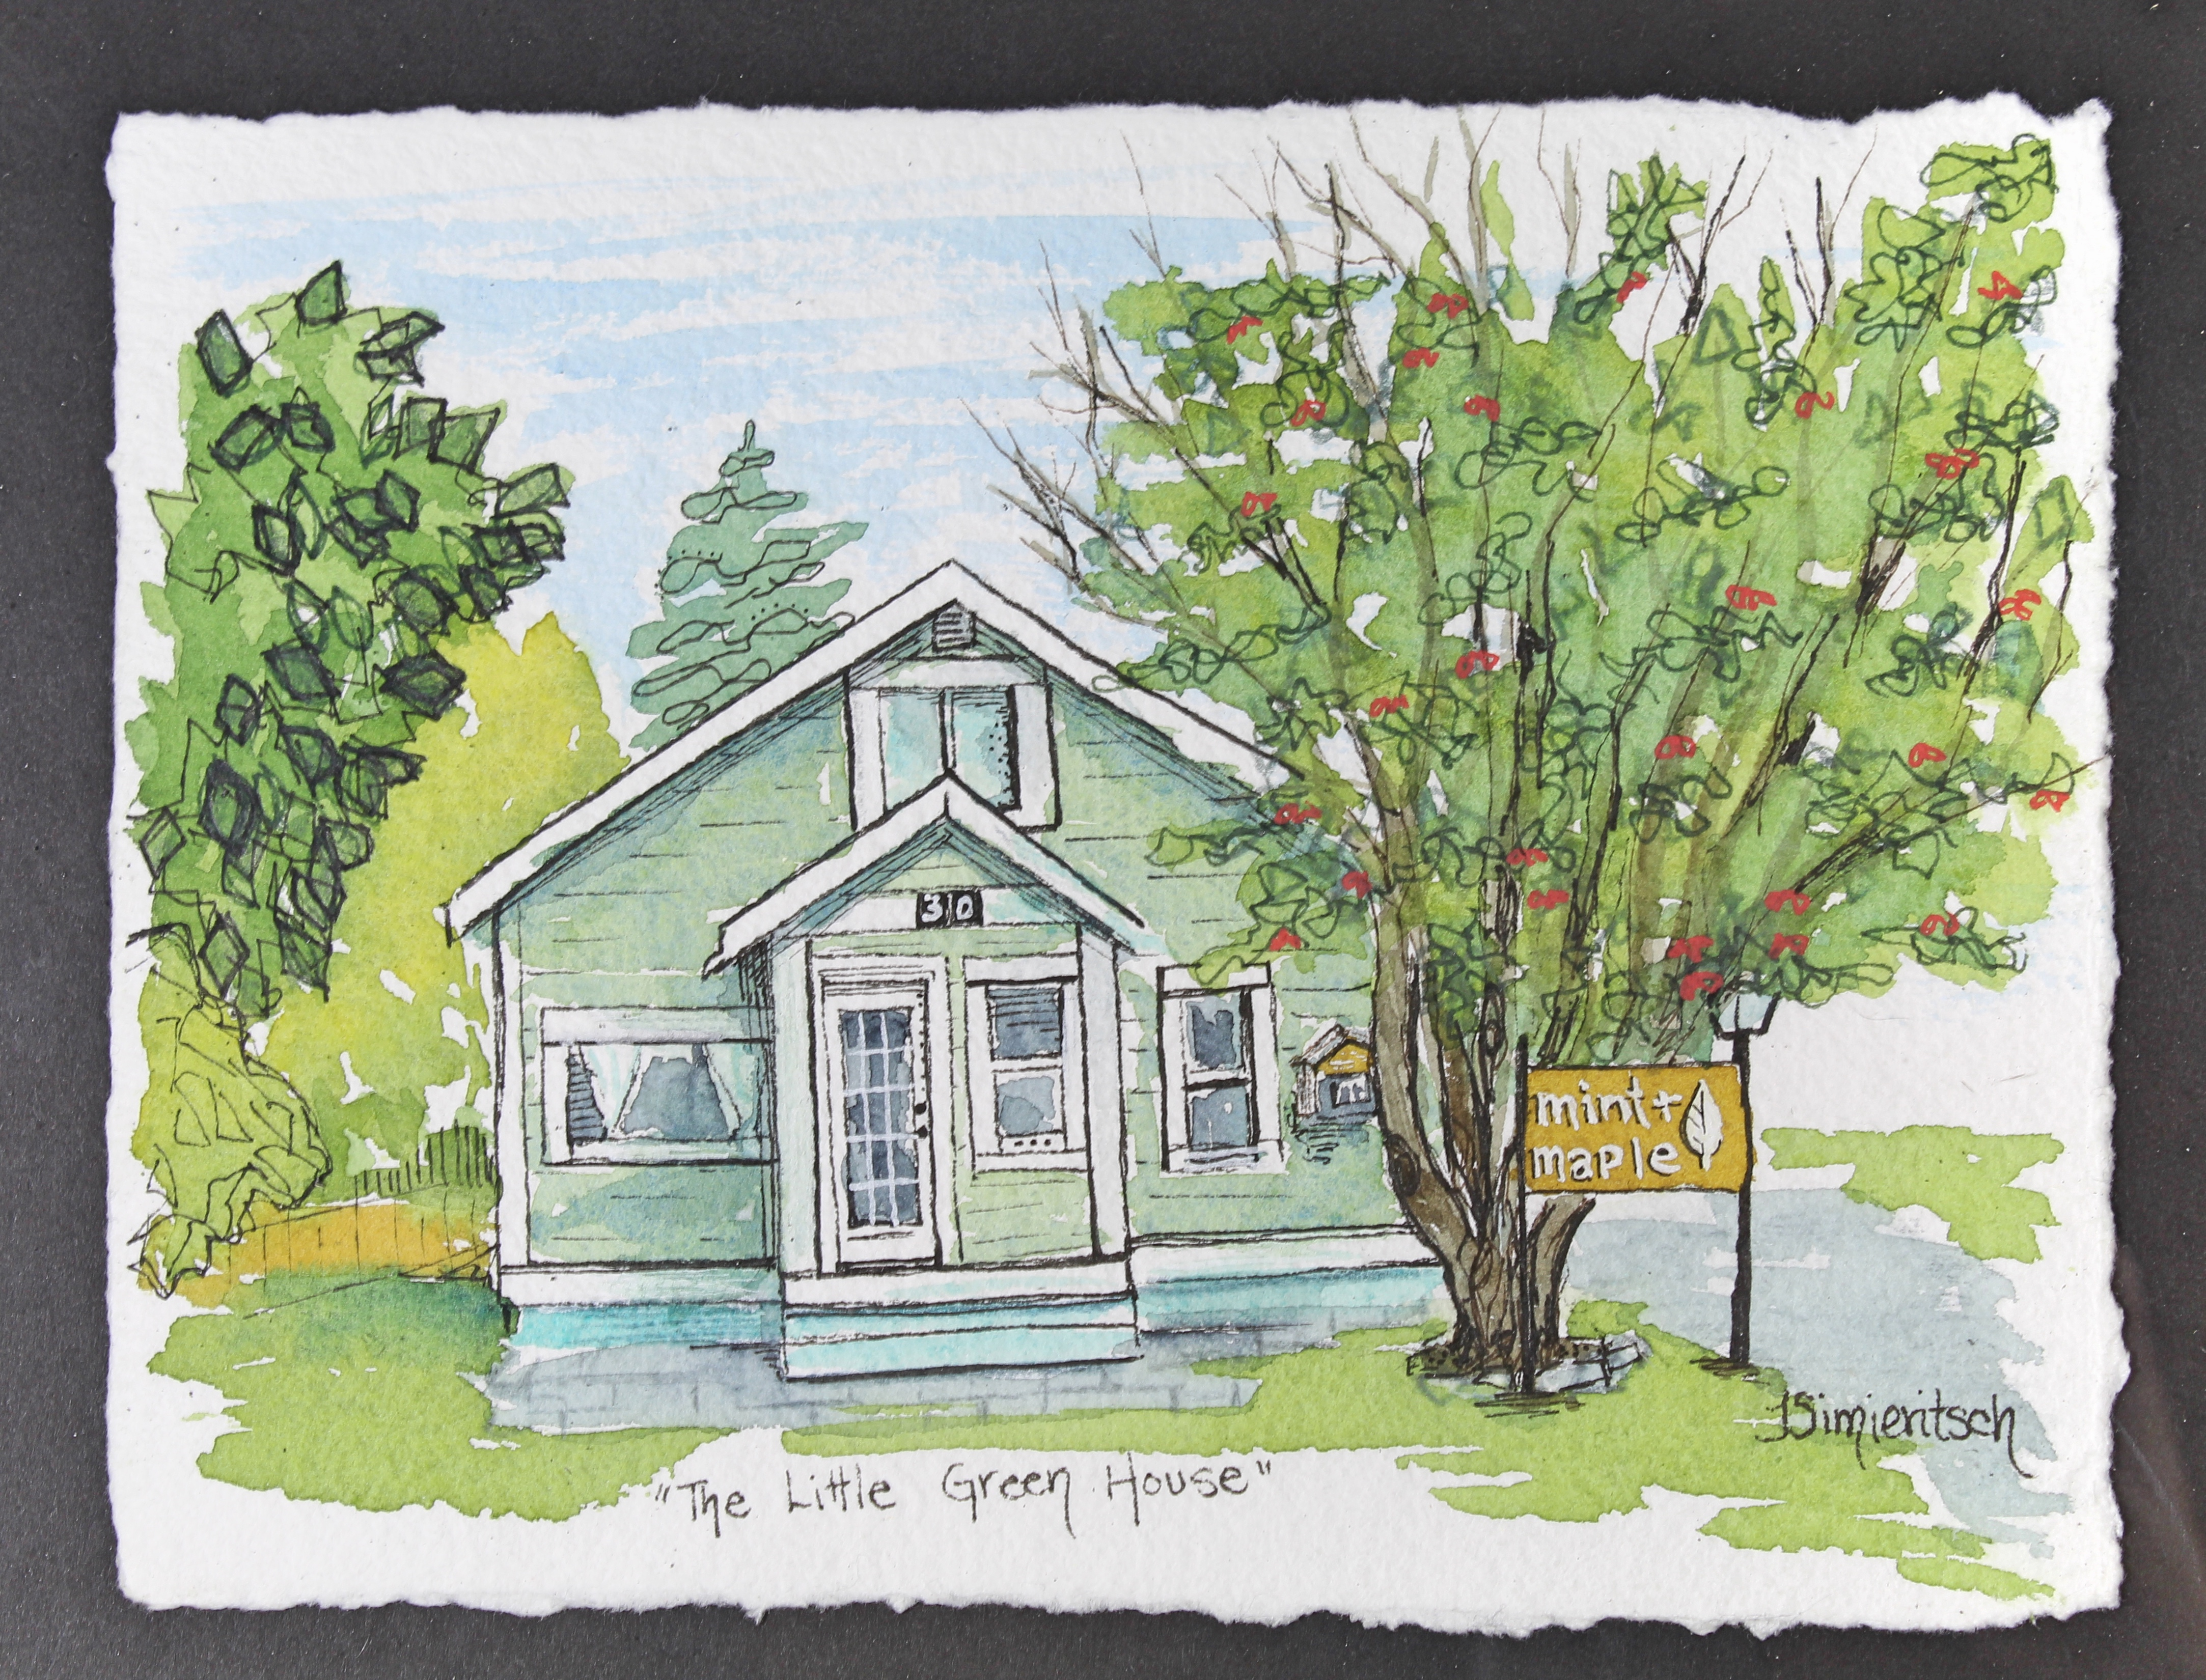 The Little Green House